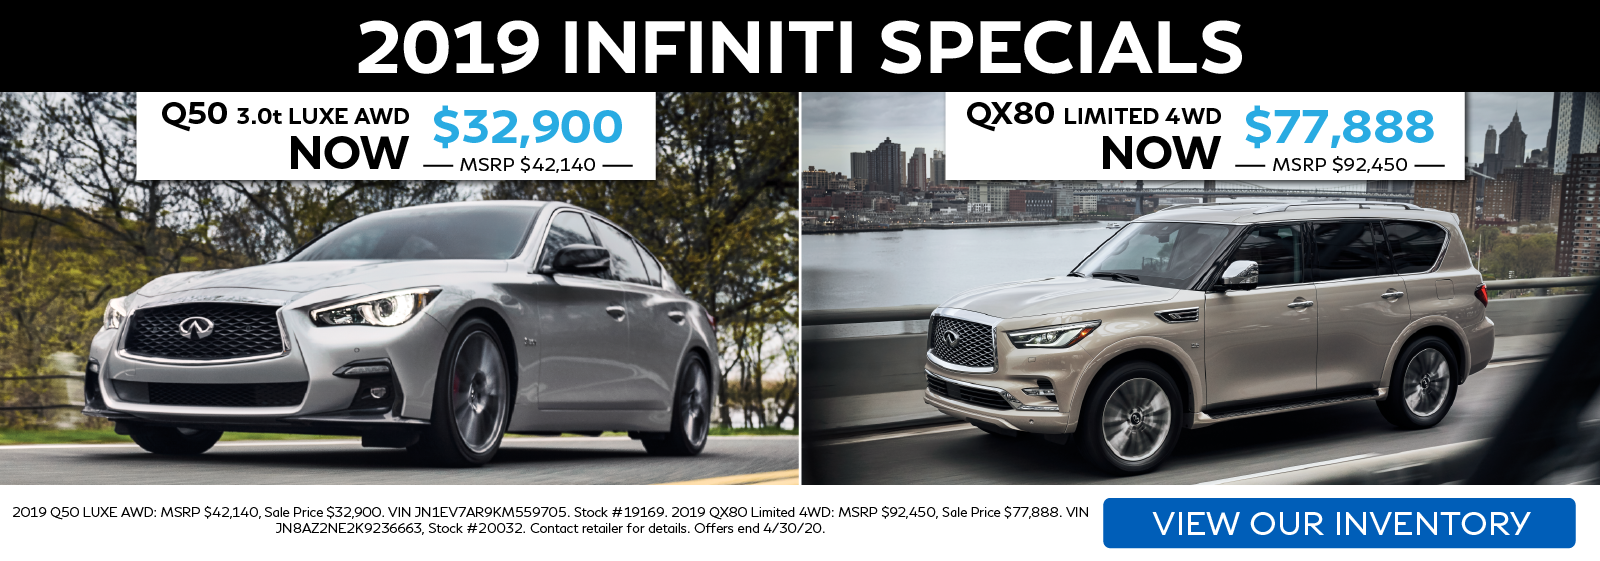 2019 INFINITI Specials. Click to view our remaining inventory!